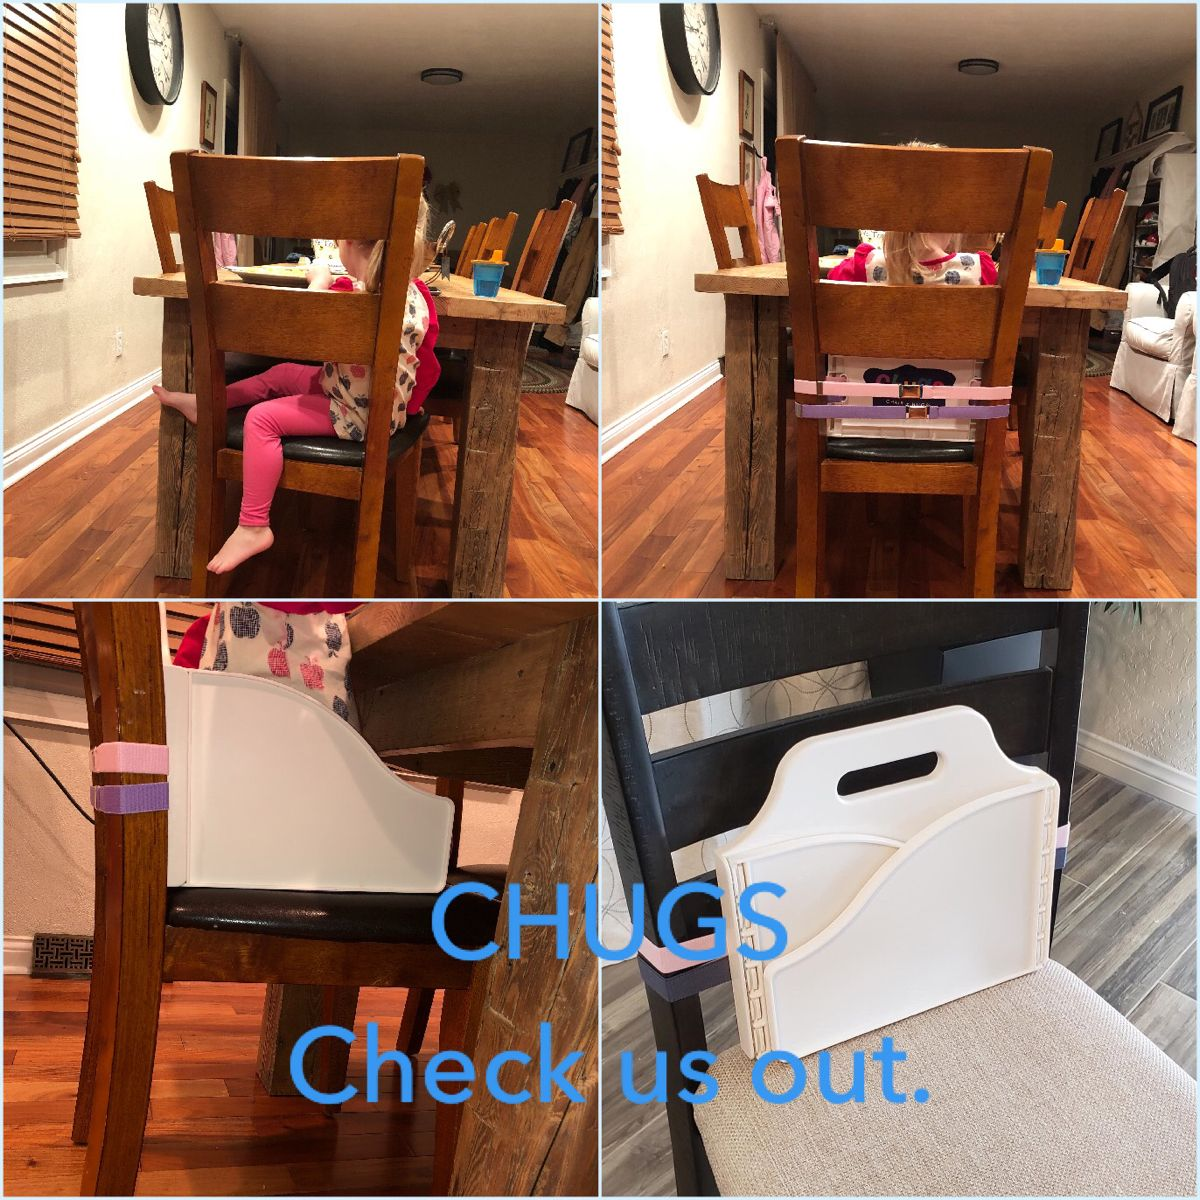 Chugs Toddler Seating Perfect For Counter High Top Chairs In 2020 Kids Seating Portable High Chairs High Top Tables